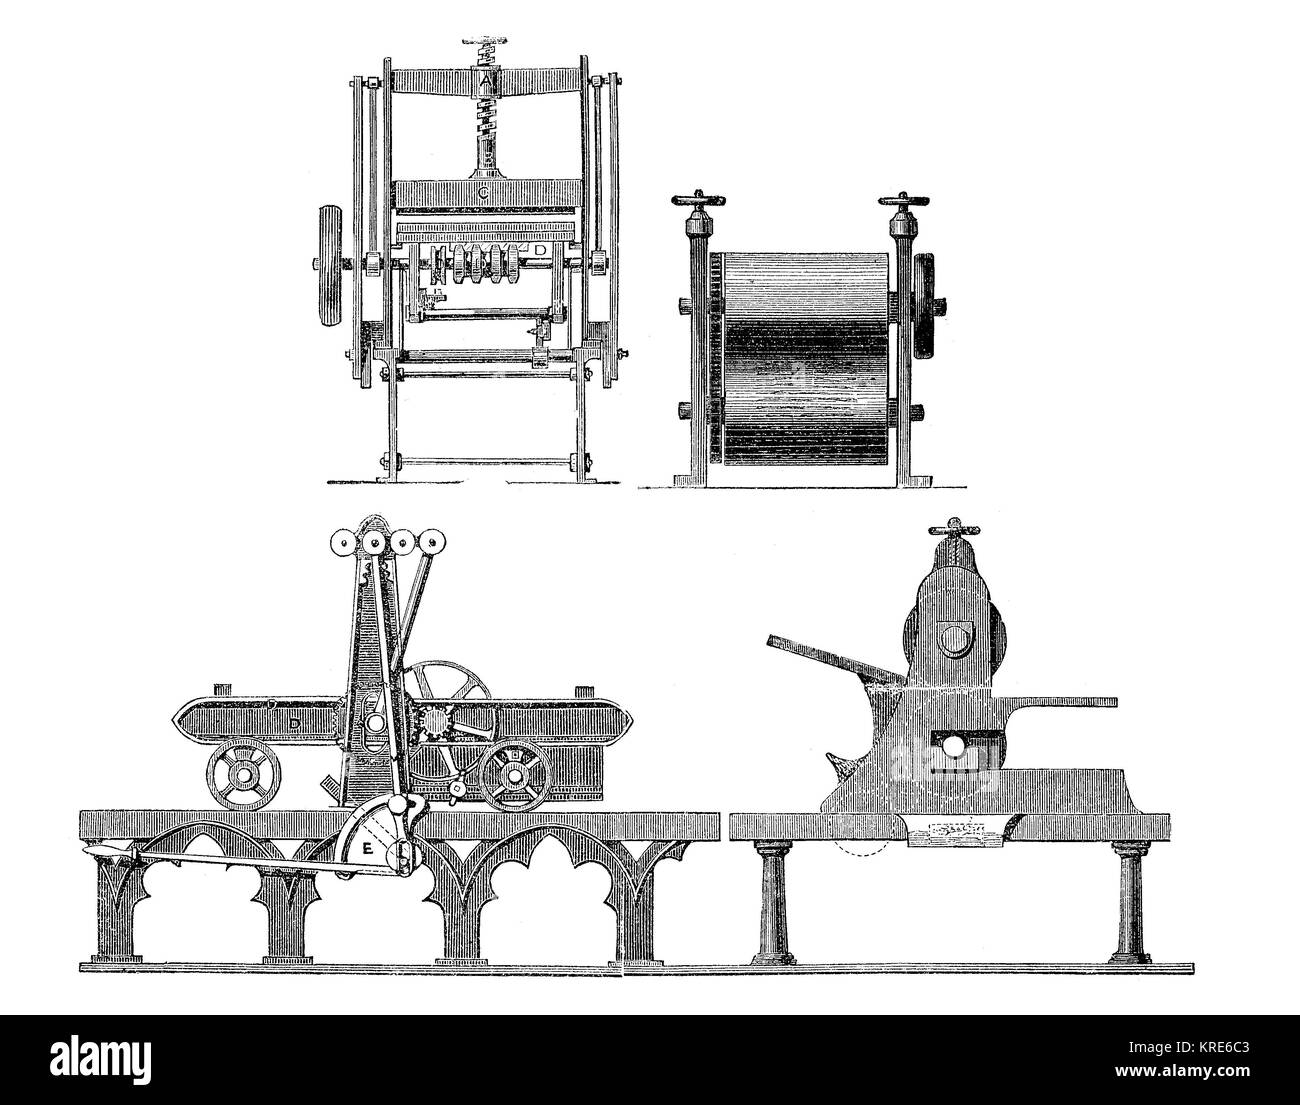 Print Engineering 1863 Charles Worssam Lithographic Press Machinery, drawing of the different views, industrial - Stock Image